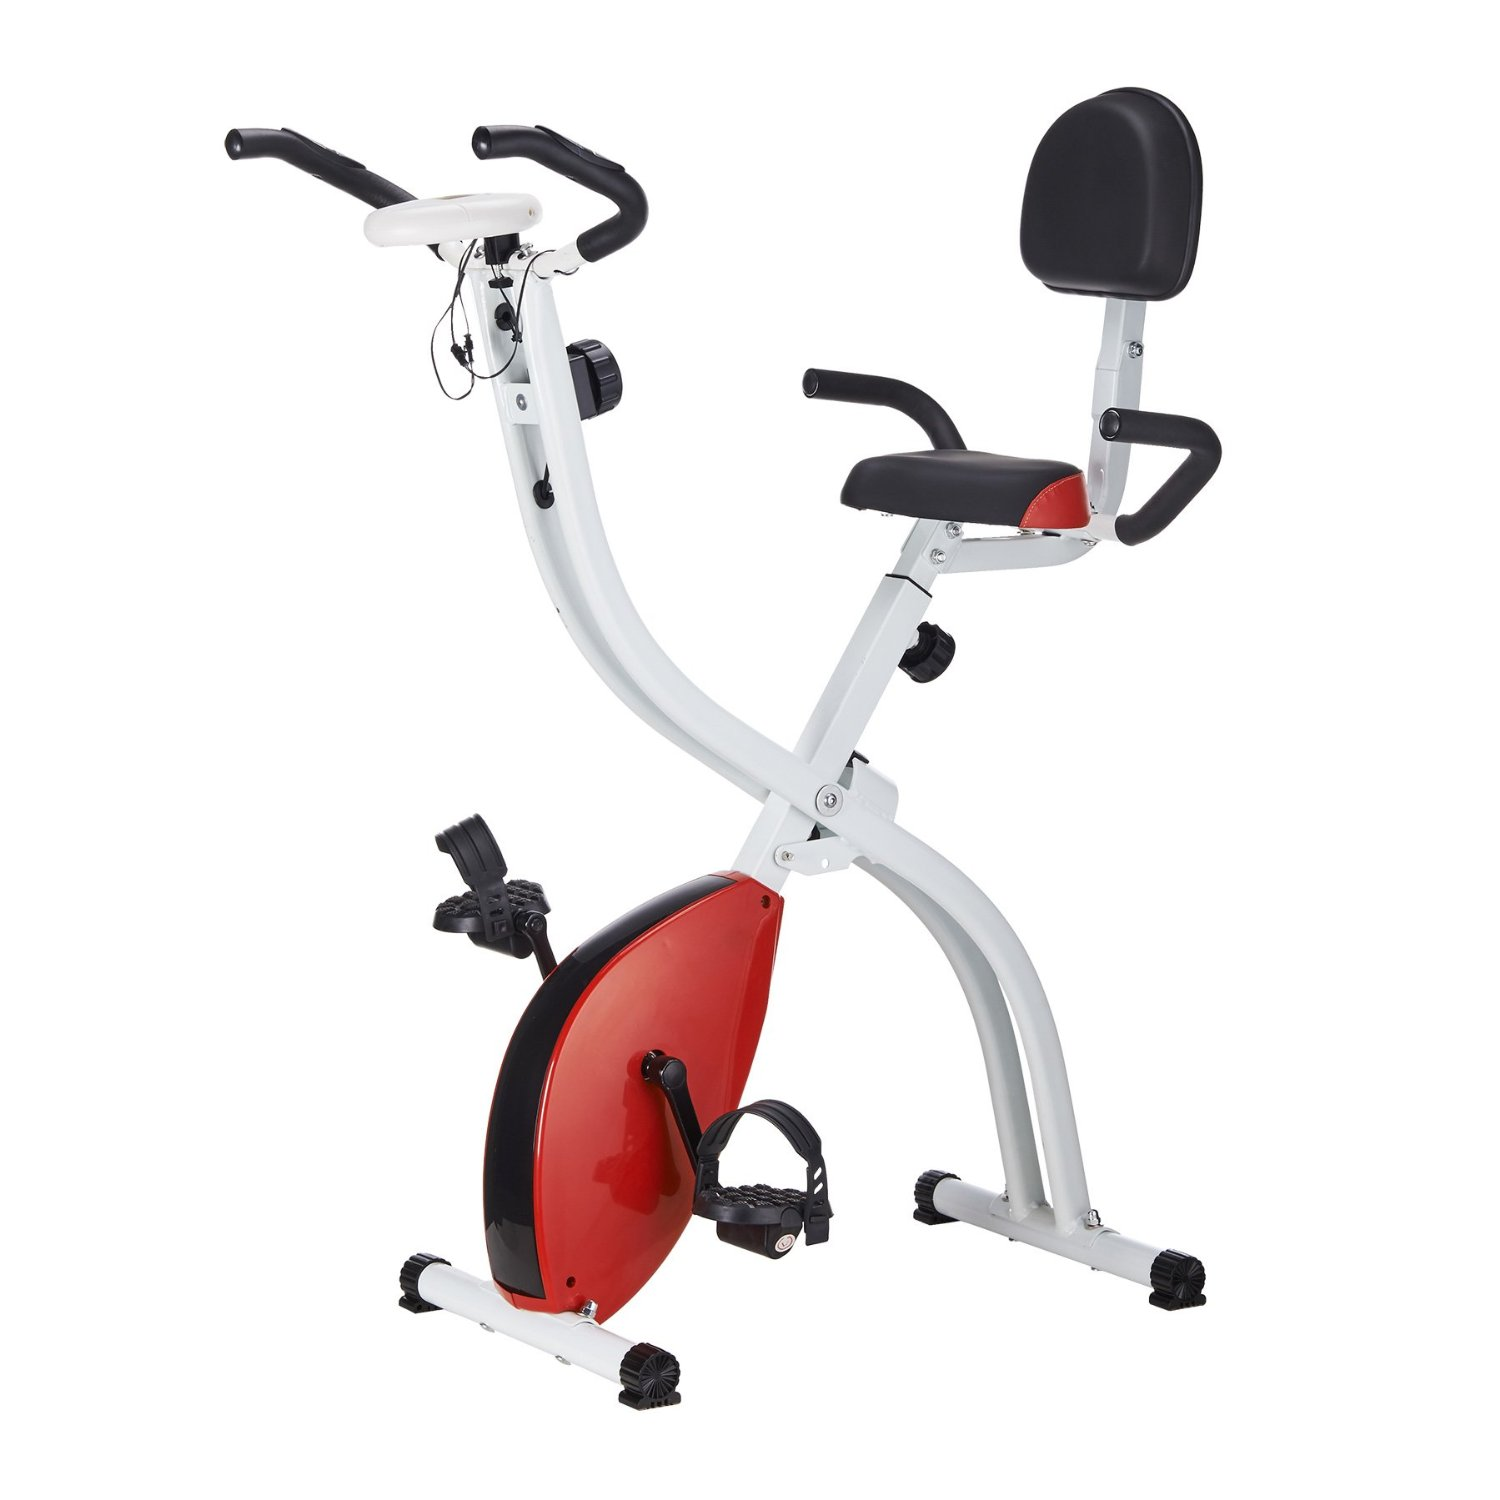 Pinty Folding Adjustable Upright Magnetic Exercise Bike